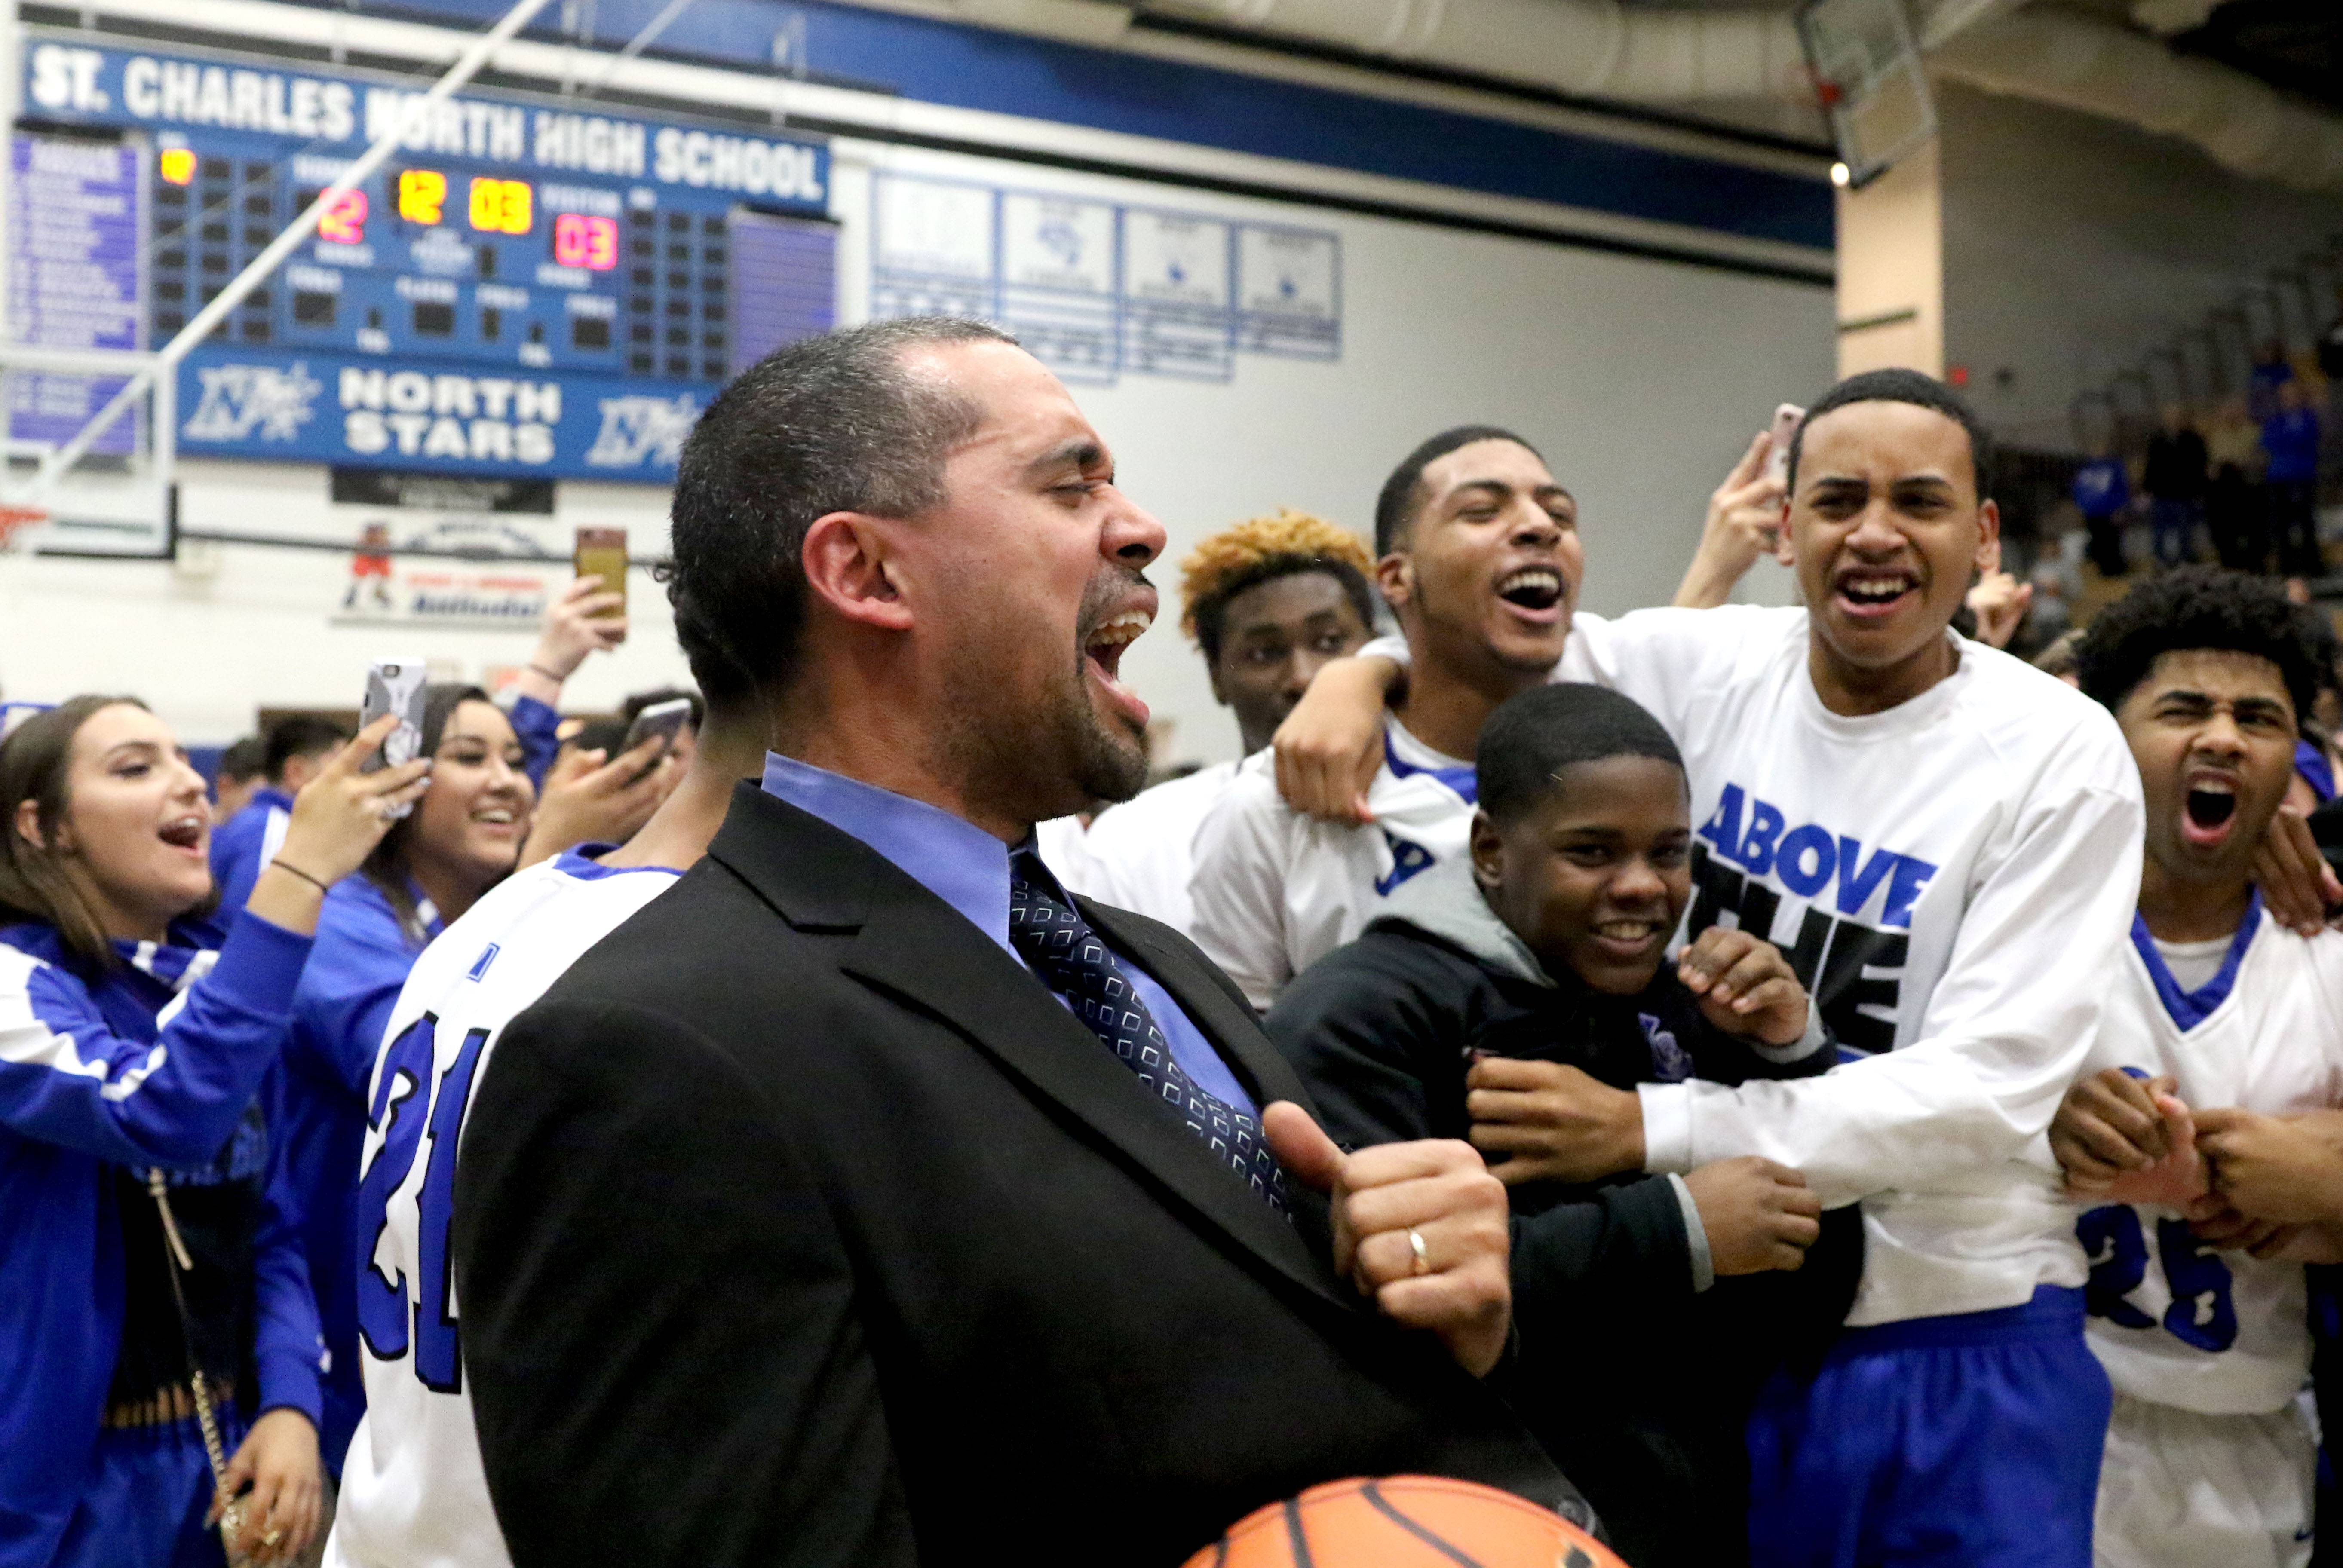 The Royals of Larkin High School celebrate a Class 4A regional championship win over St. Charles North at St. Charles North Friday night. Larkin head coach Deryn Carter gets his team revved up after the win.